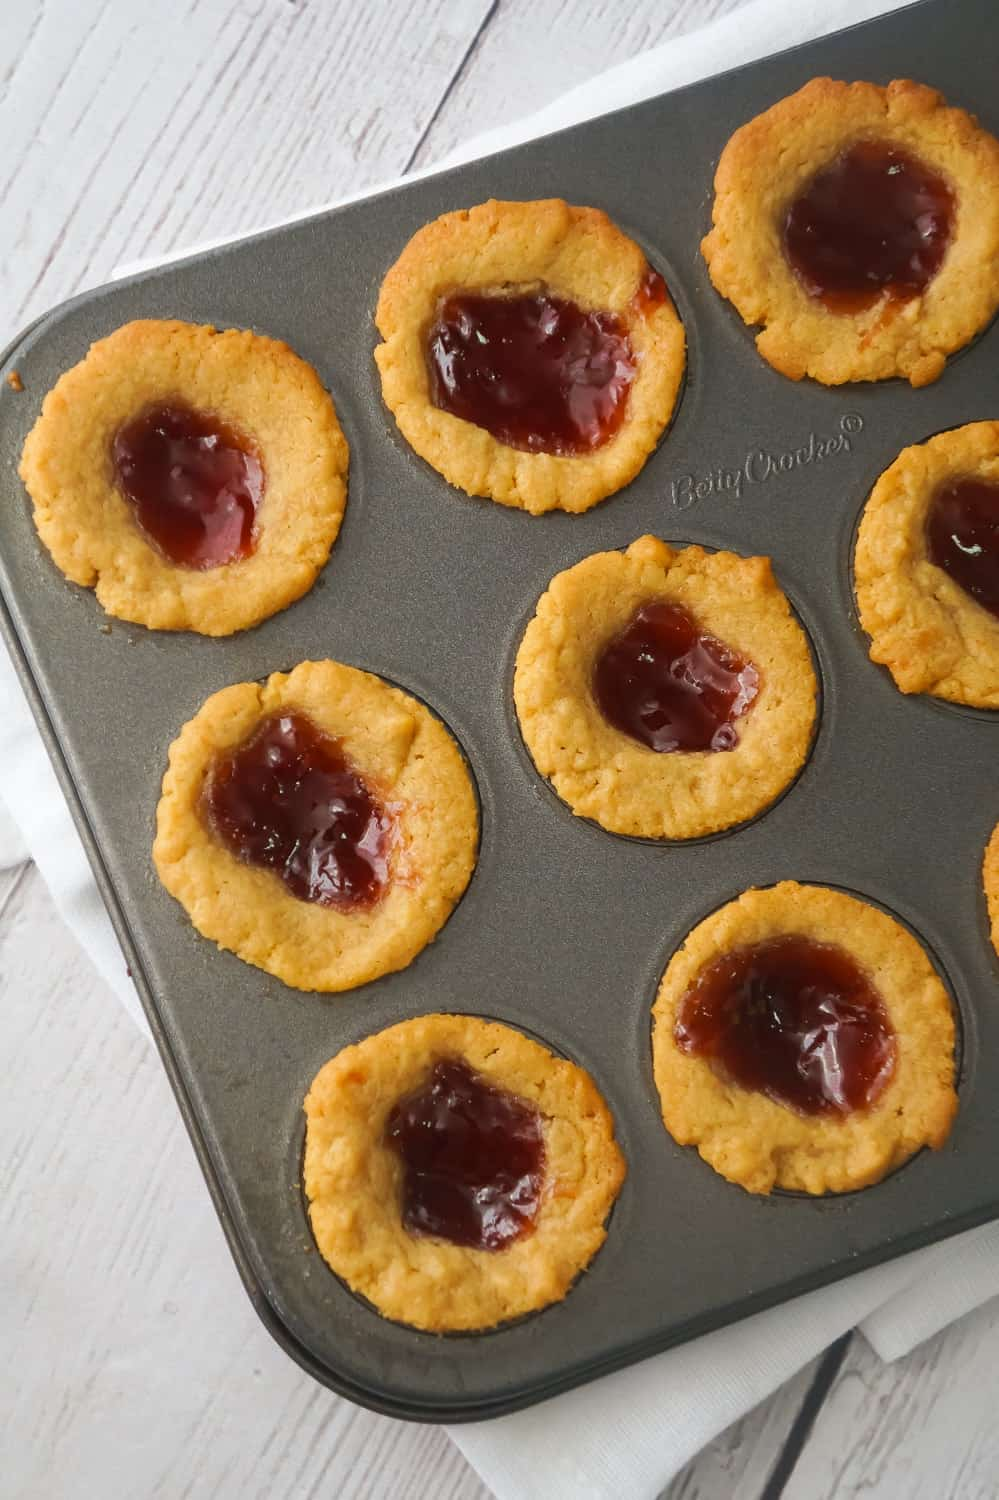 Peanut Butter and Jelly Blondie Bites are a delicious bite sized dessert baked in mini muffin tins. These peanut butter blondies are topped with strawberry jam and baked to perfection.